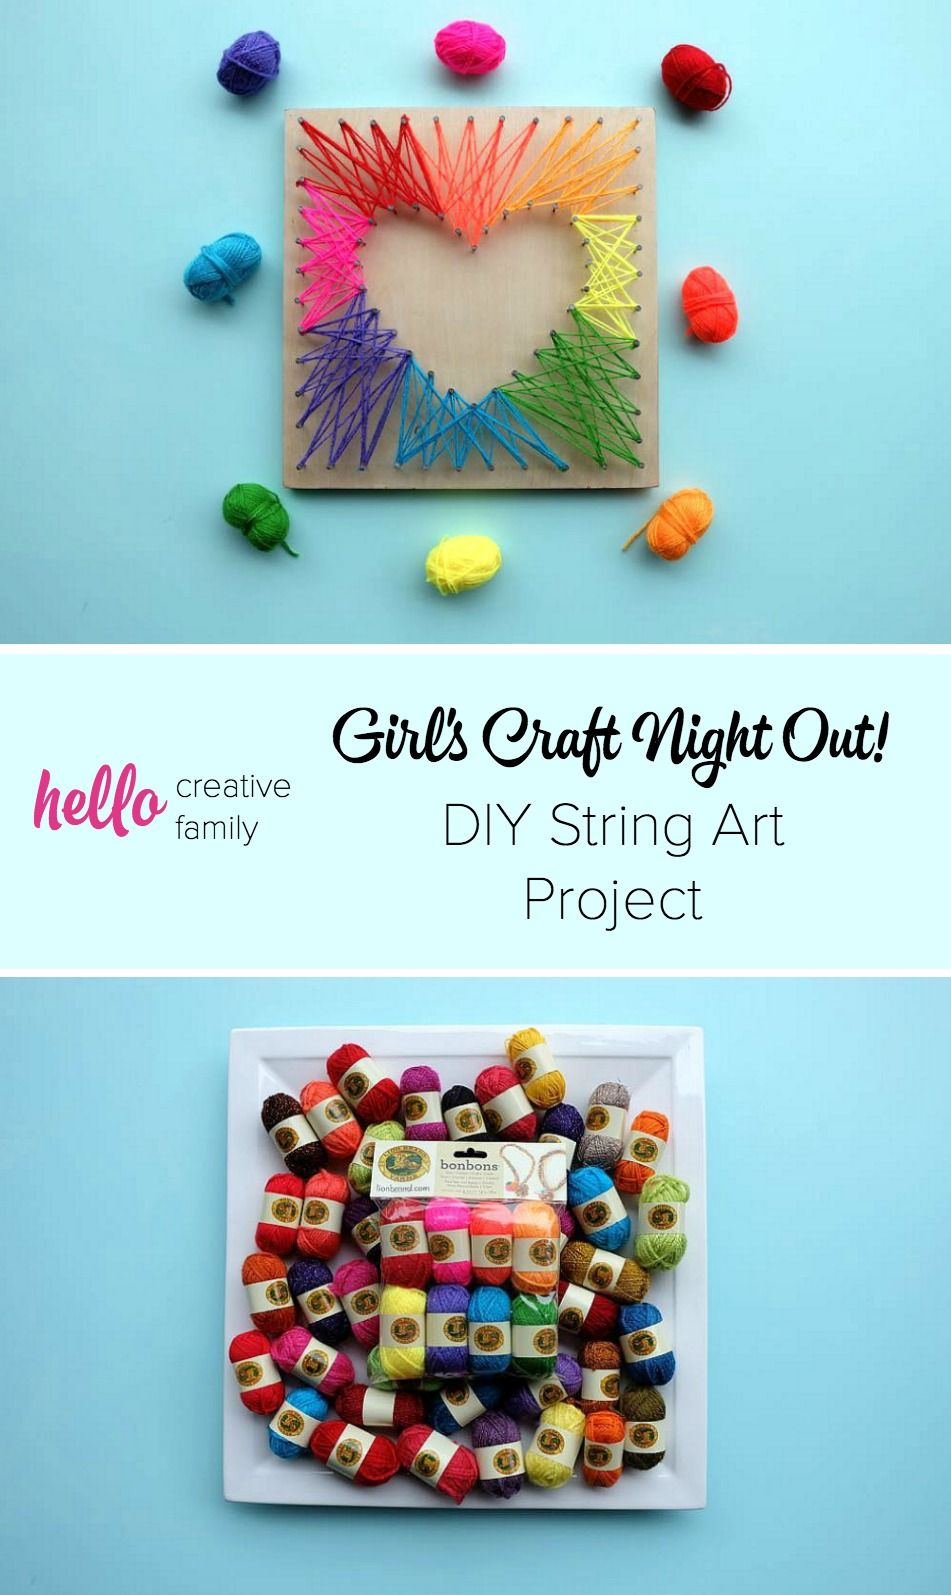 craft diy night creative projects string crafts easy project arts girlfriend hellocreativefamily hello together girlfriends fun adults teens recycled friend